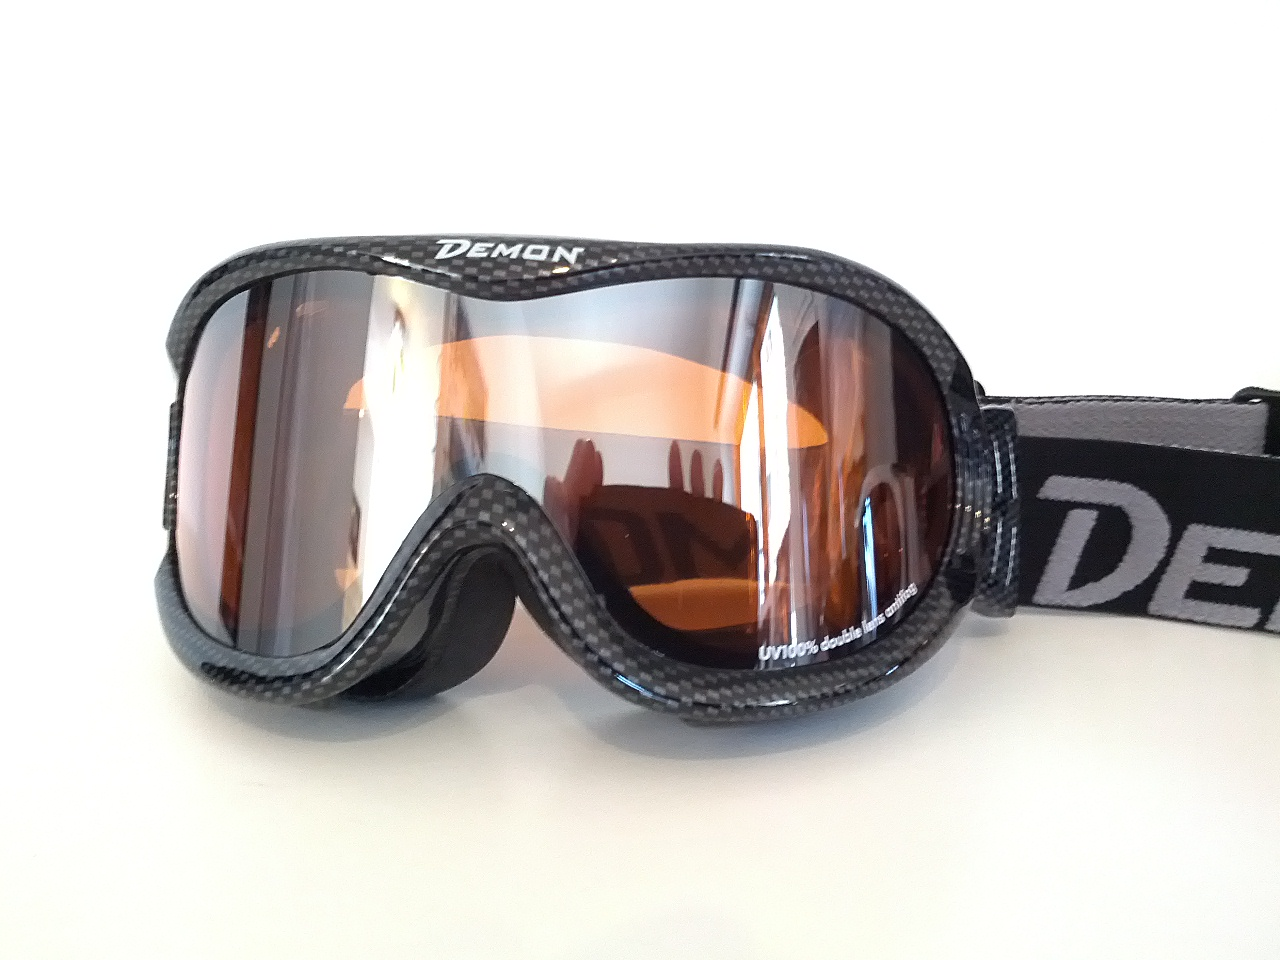 38bd23ece16b Online sales of sunglasses and eyeglasses - SKI GOGGLE DEMON SNOW OPTICAL 1  CARBON